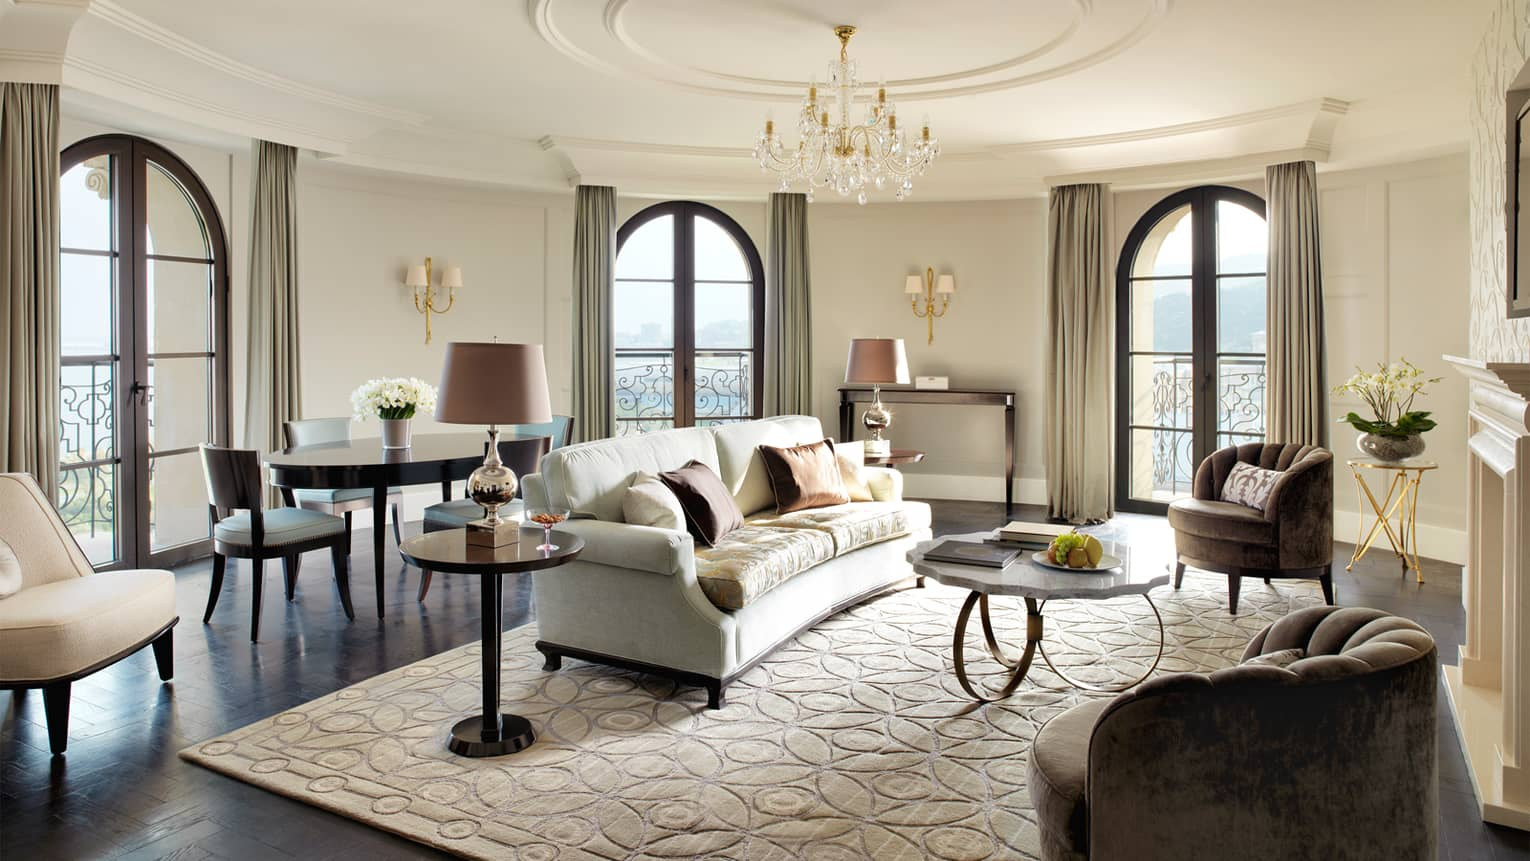 Circular living room in corner turret, French balcony doors, white sofa and area rug, plush chairs